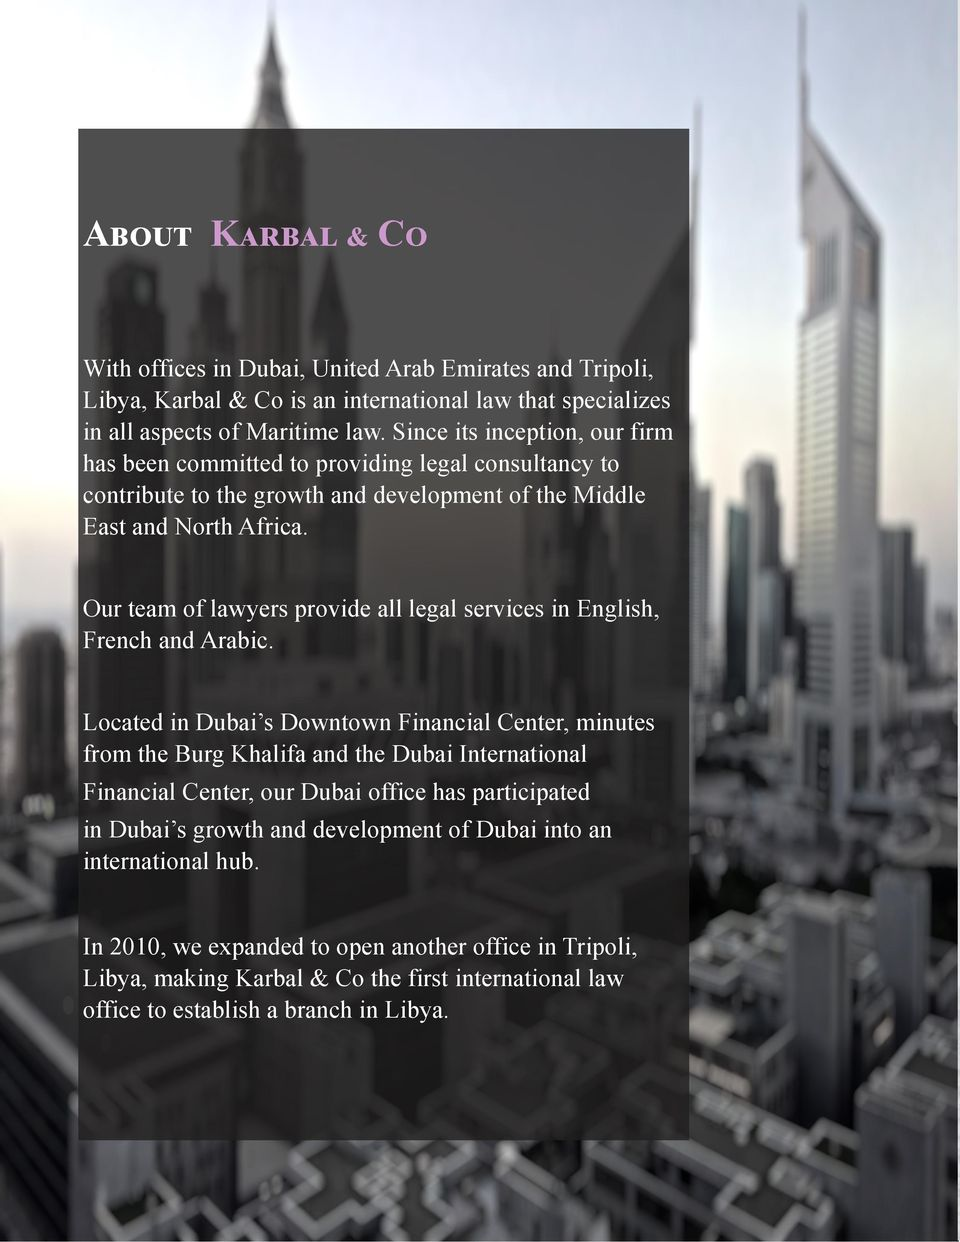 Our team of lawyers provide all legal services in English, French and Arabic.